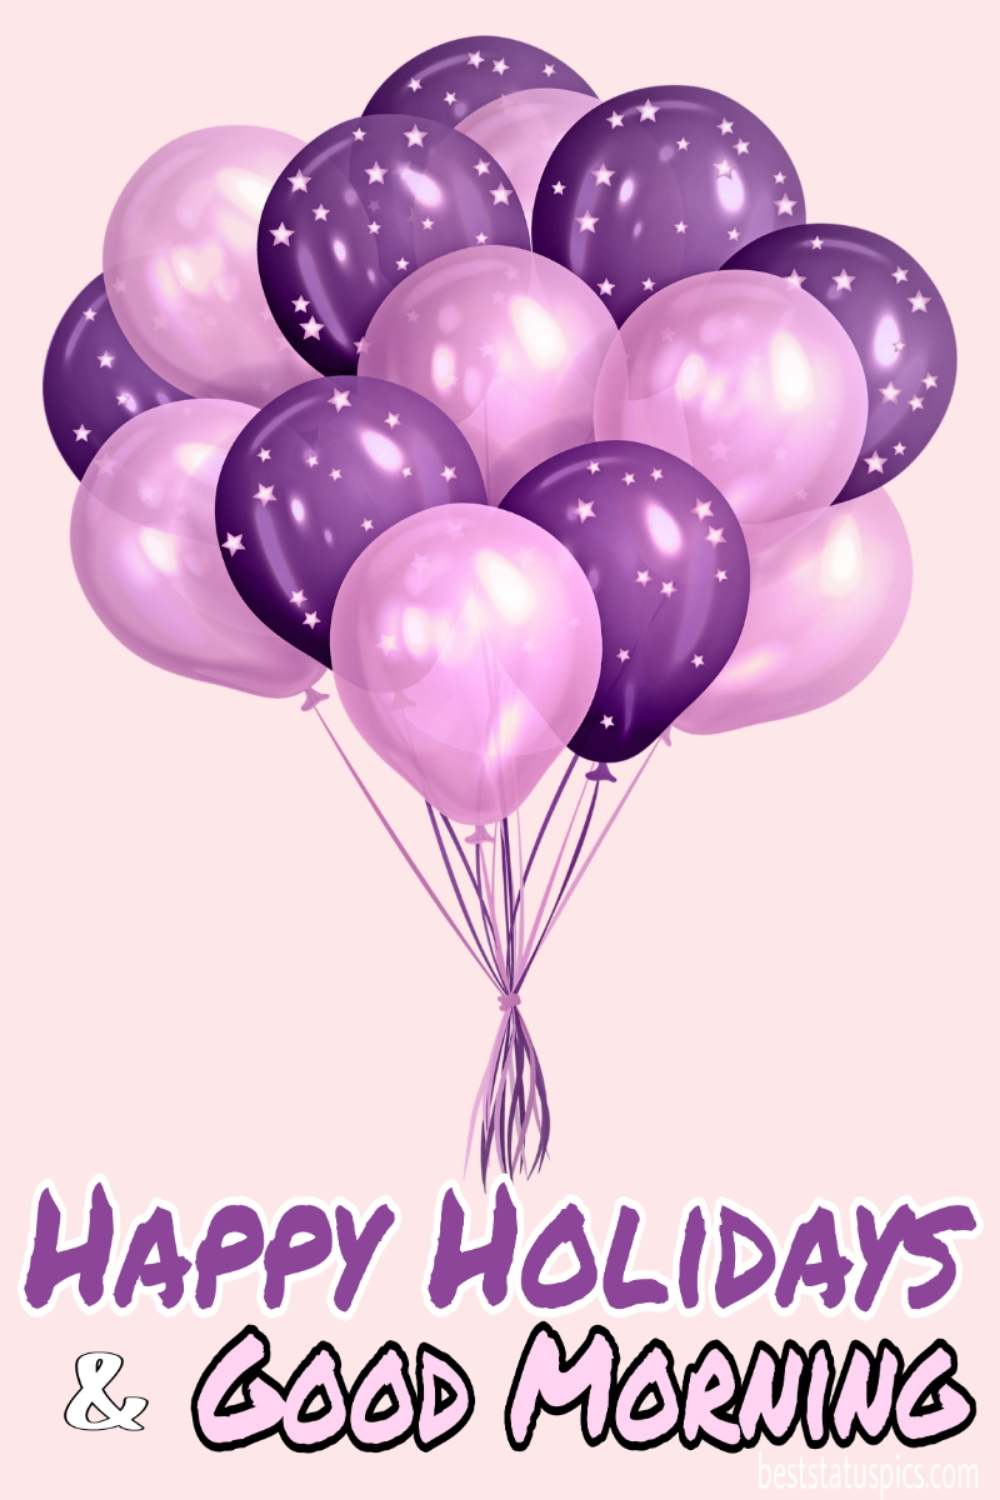 Happy holidays 2022 with morning greeting cards with balloons for friends and family